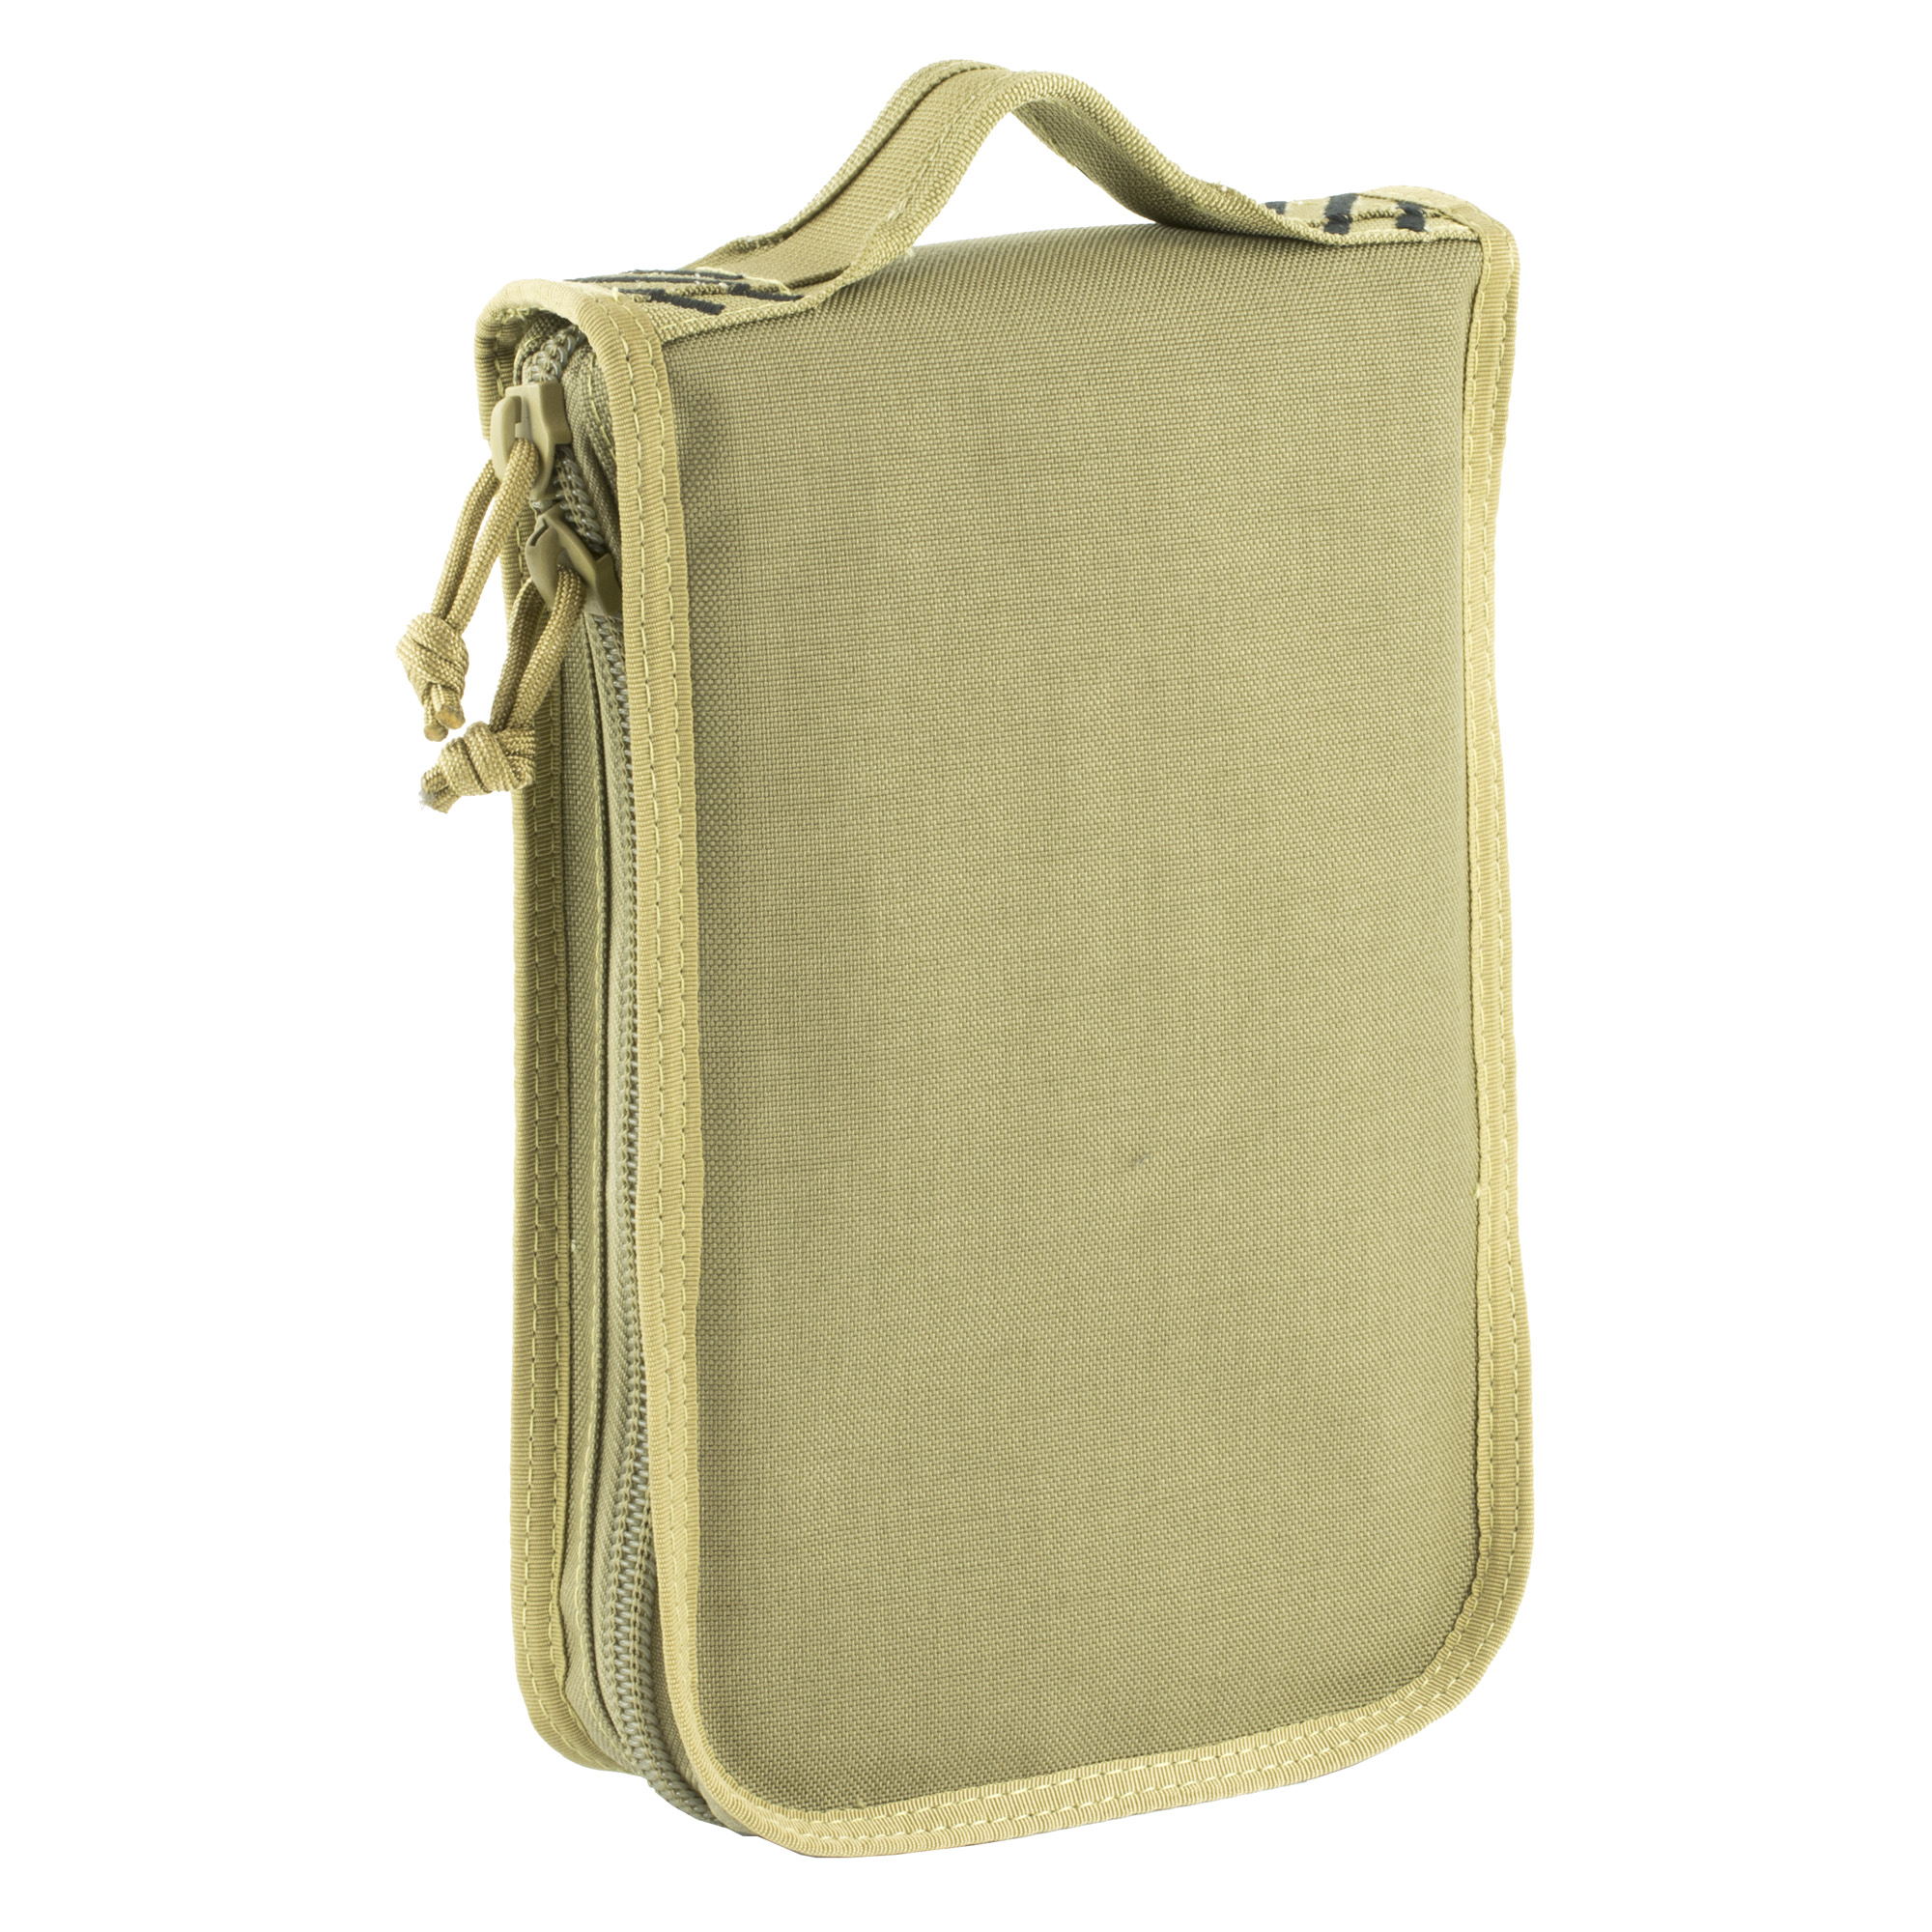 G-Outdoors, Inc. G-outdrs Gps Pstl Cs For Tacpack Tan